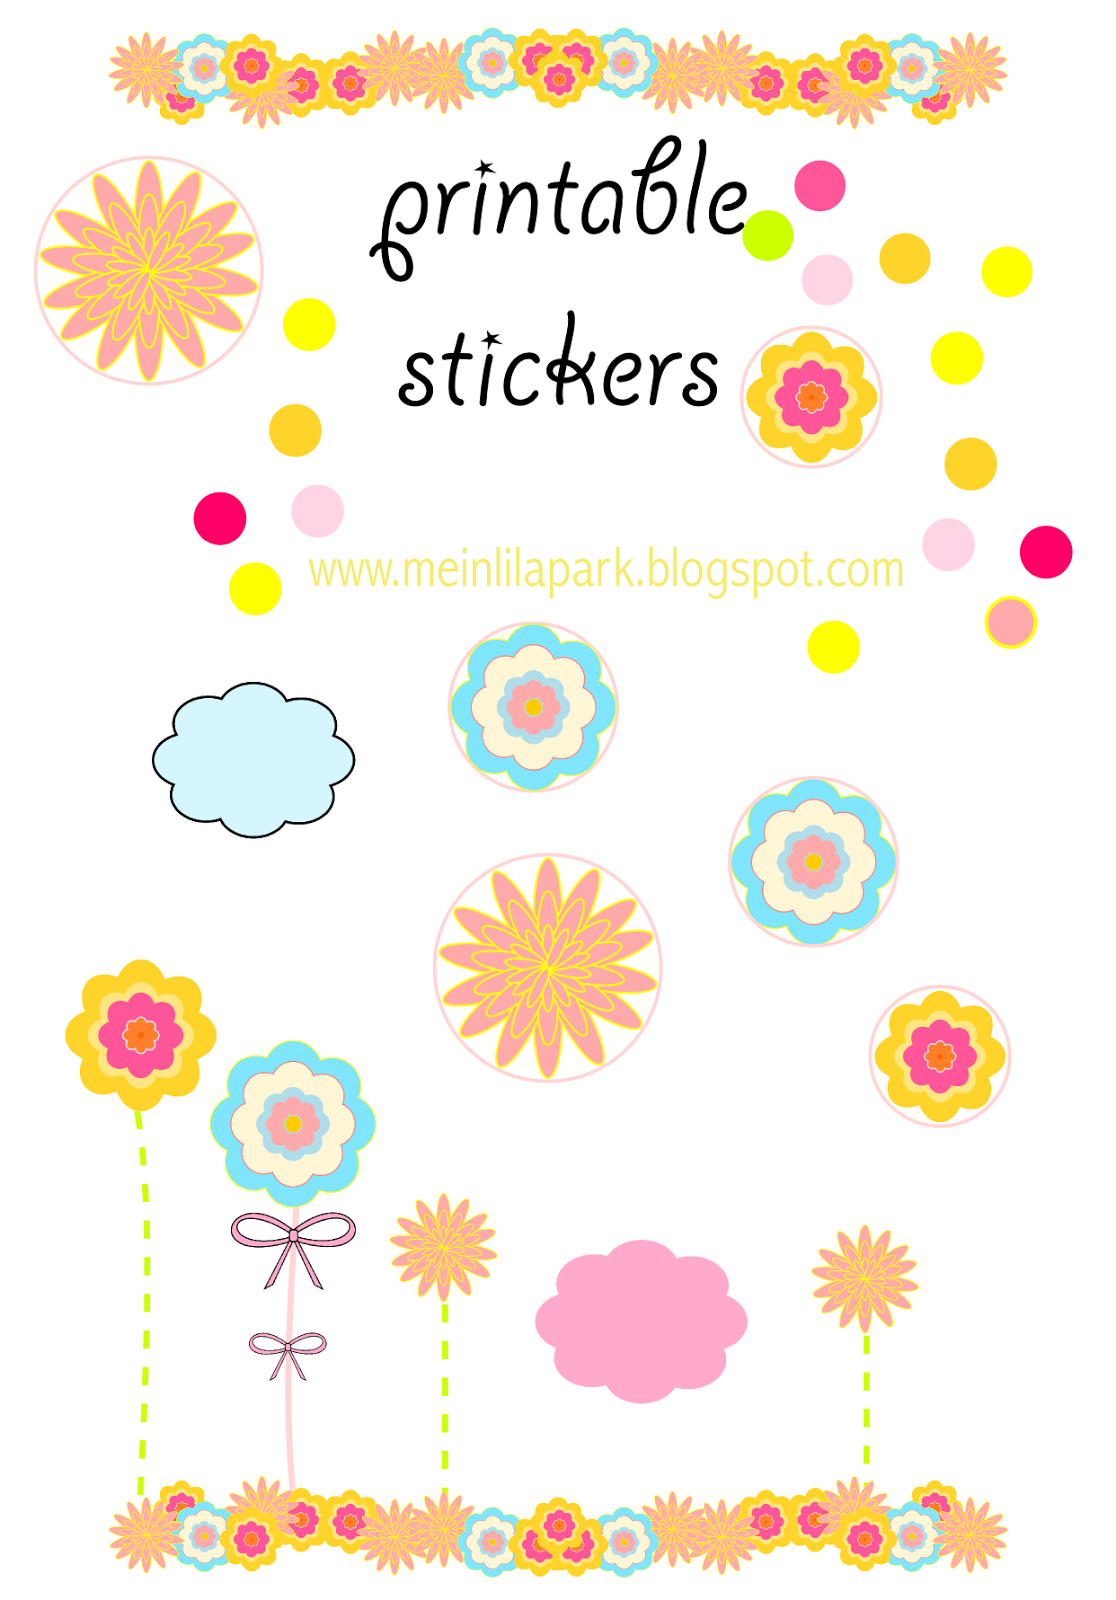 Free Printable Bumper Sticker Templates